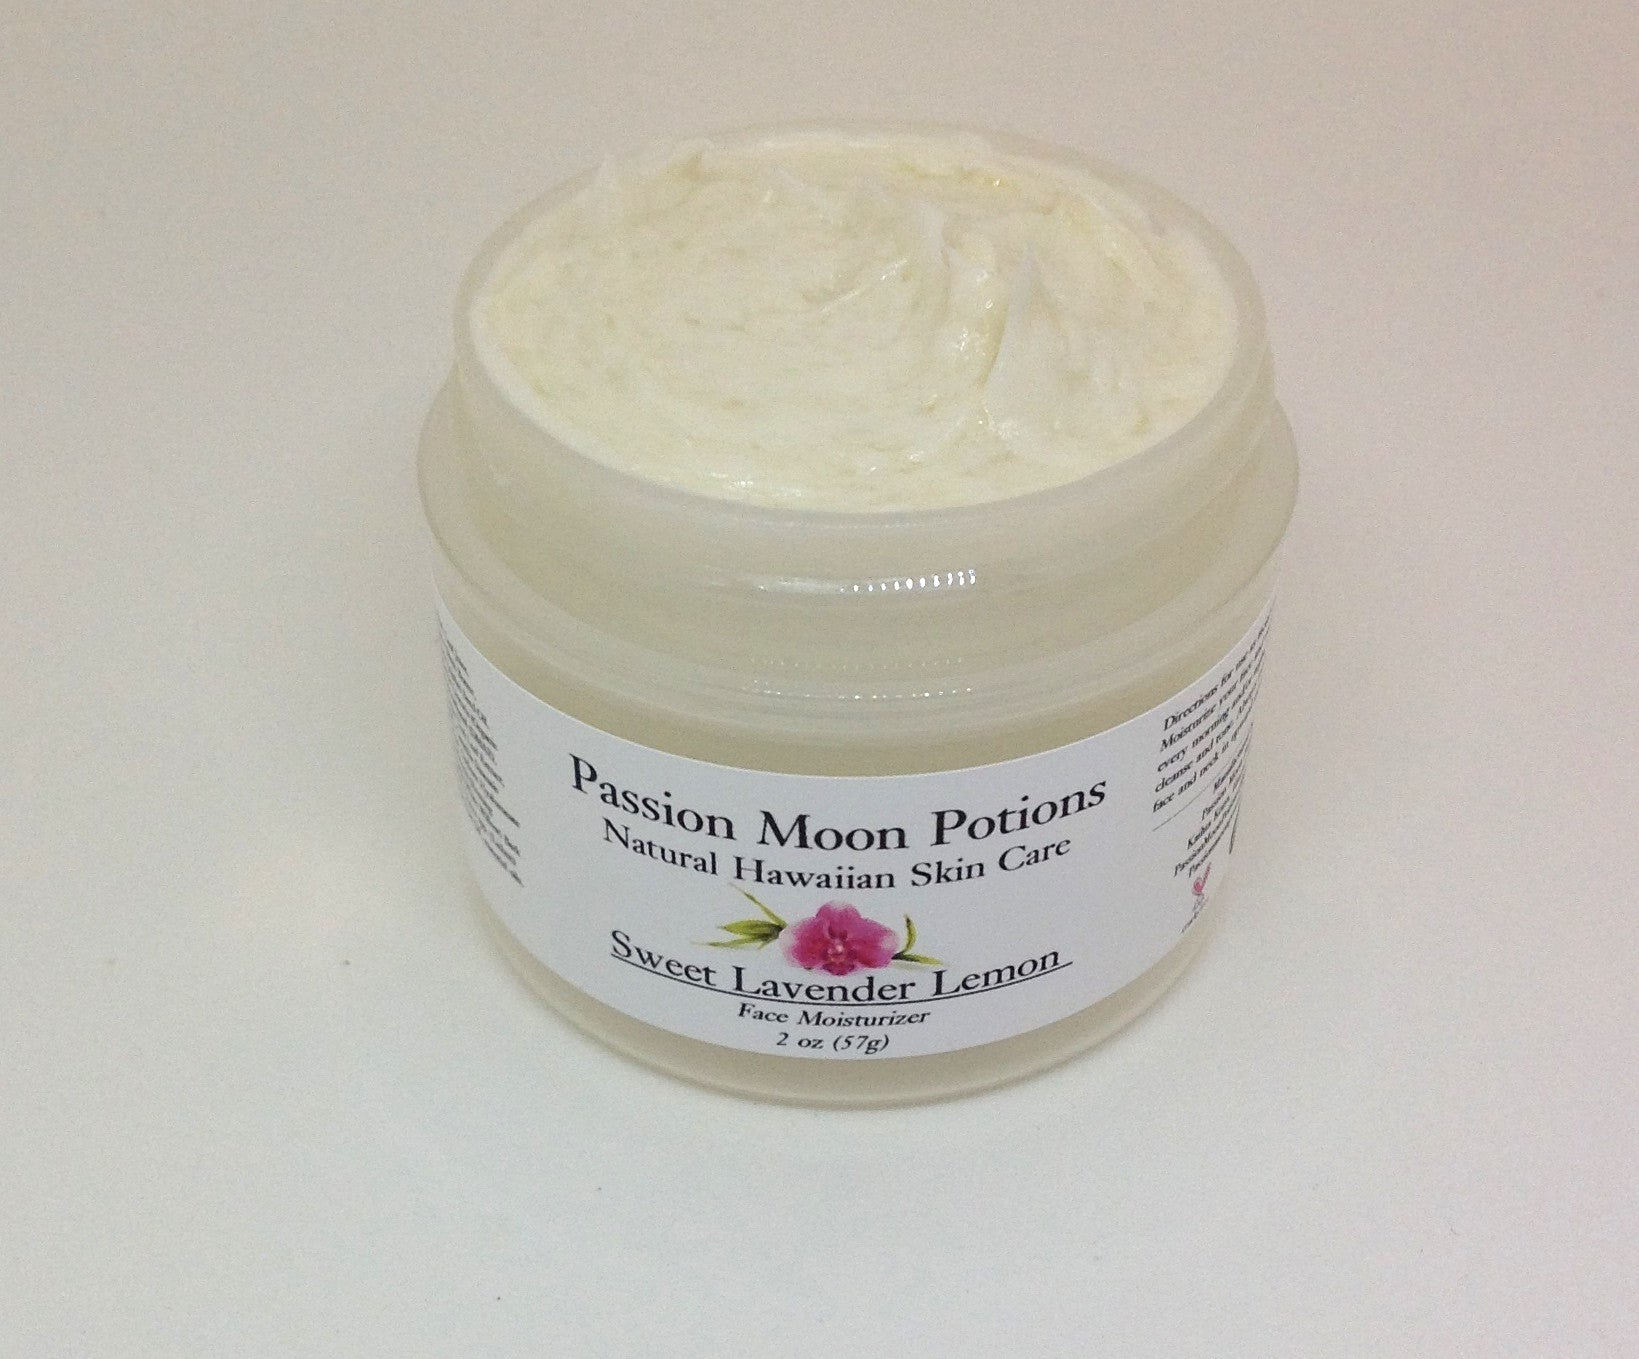 Sweet Lavender Lemon Face Moisturizer - Passion Moon Potions - 2